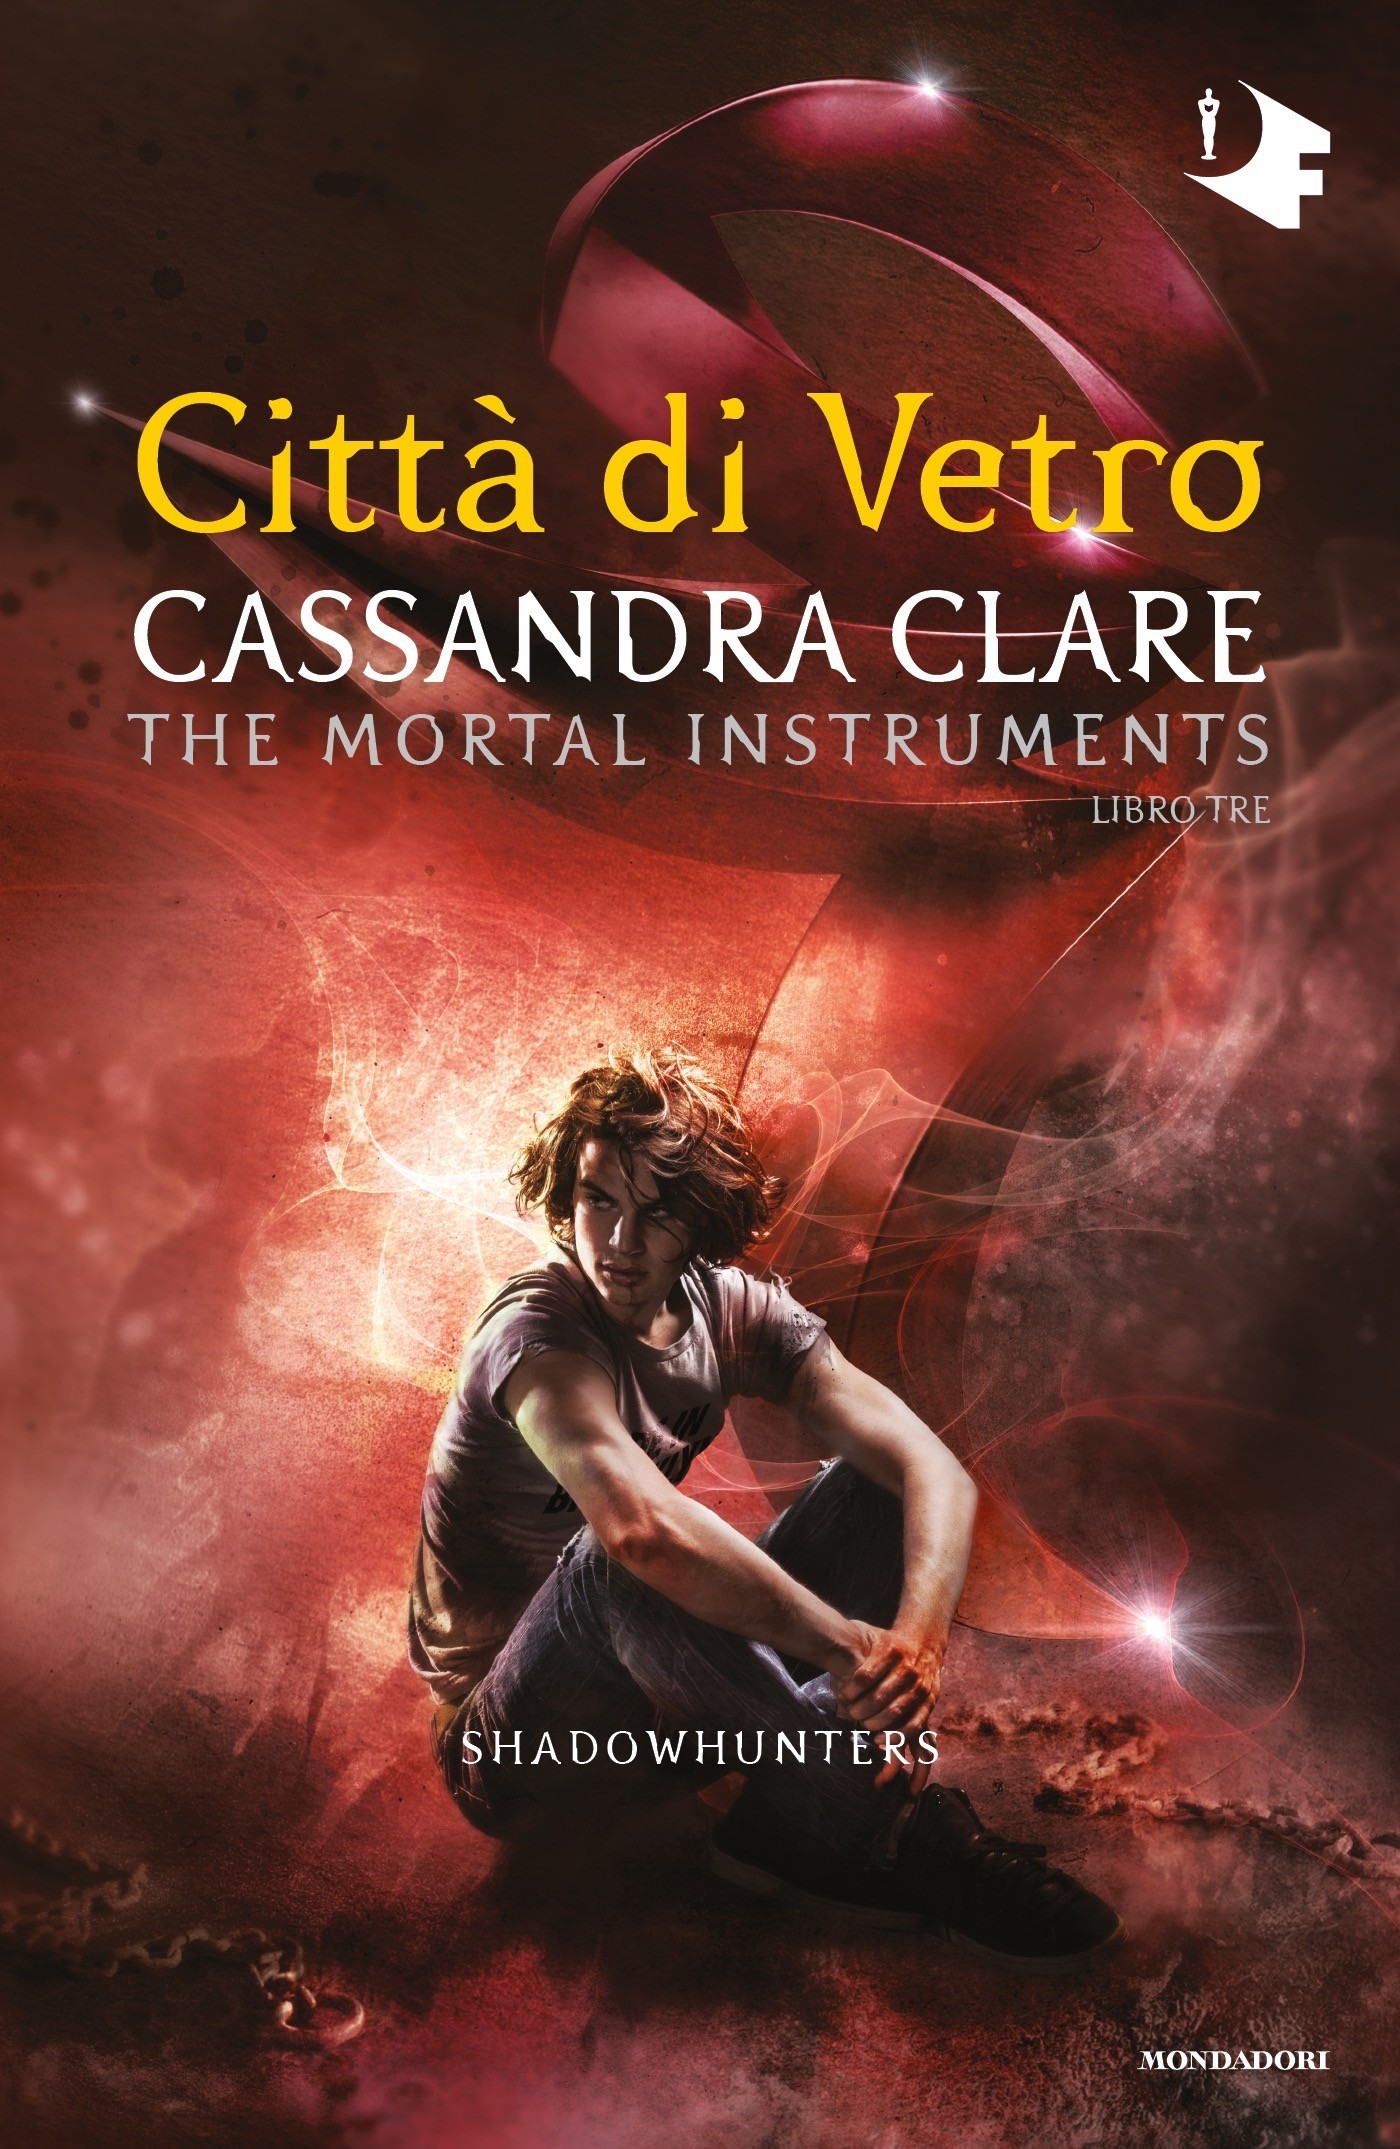 Shadowhunters Libros Gli Ebook Di Cassandra Clare Ebook Bookrepublic